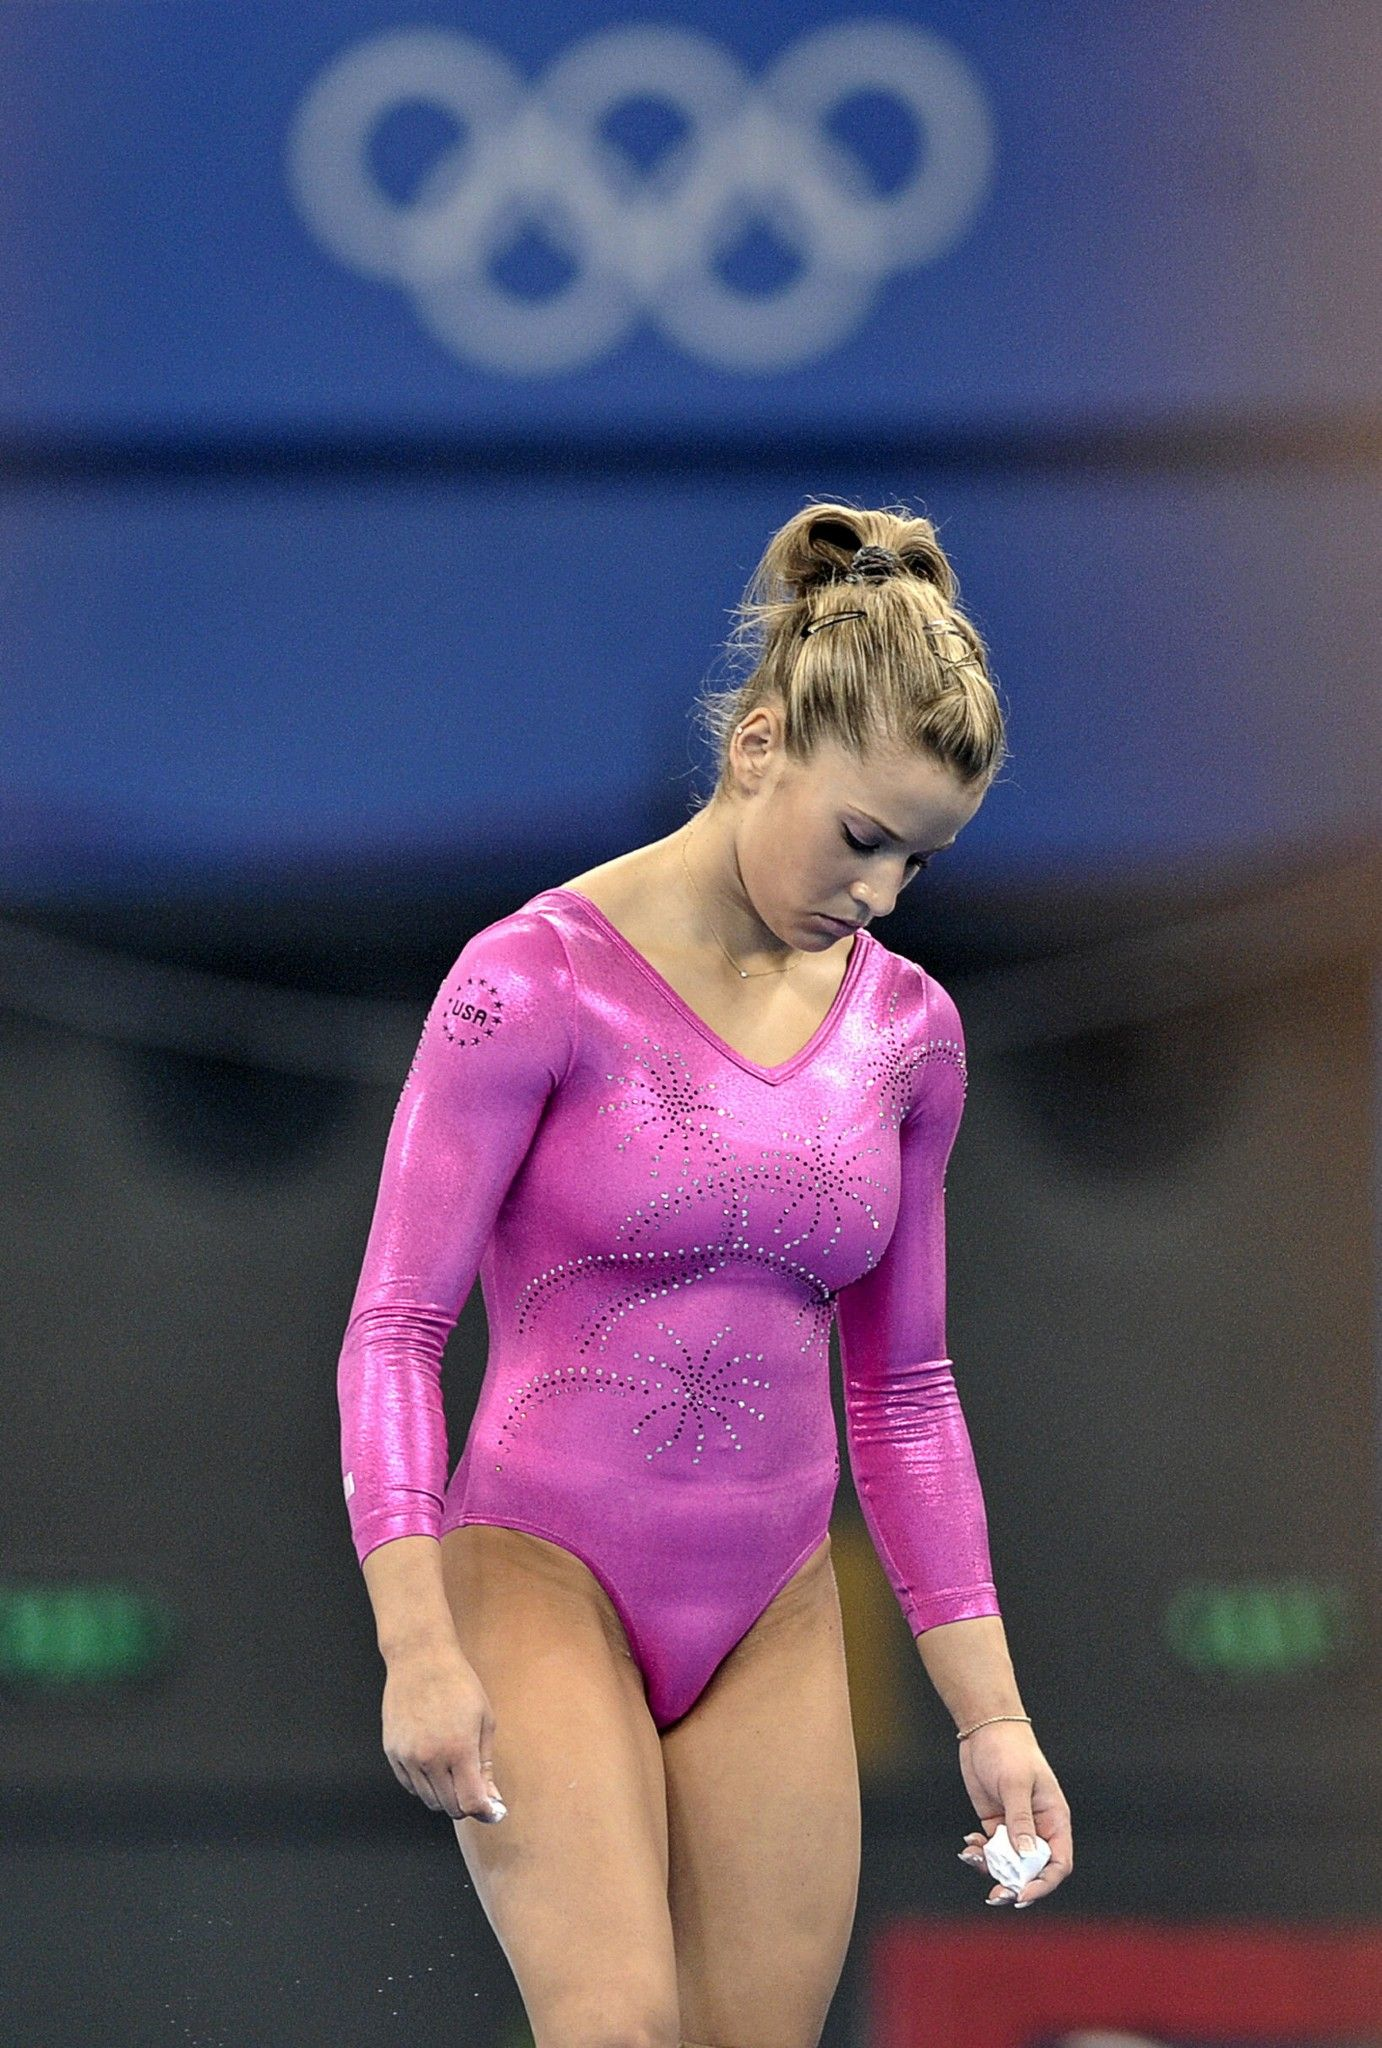 Alicia Sacramone Nude Photos 63